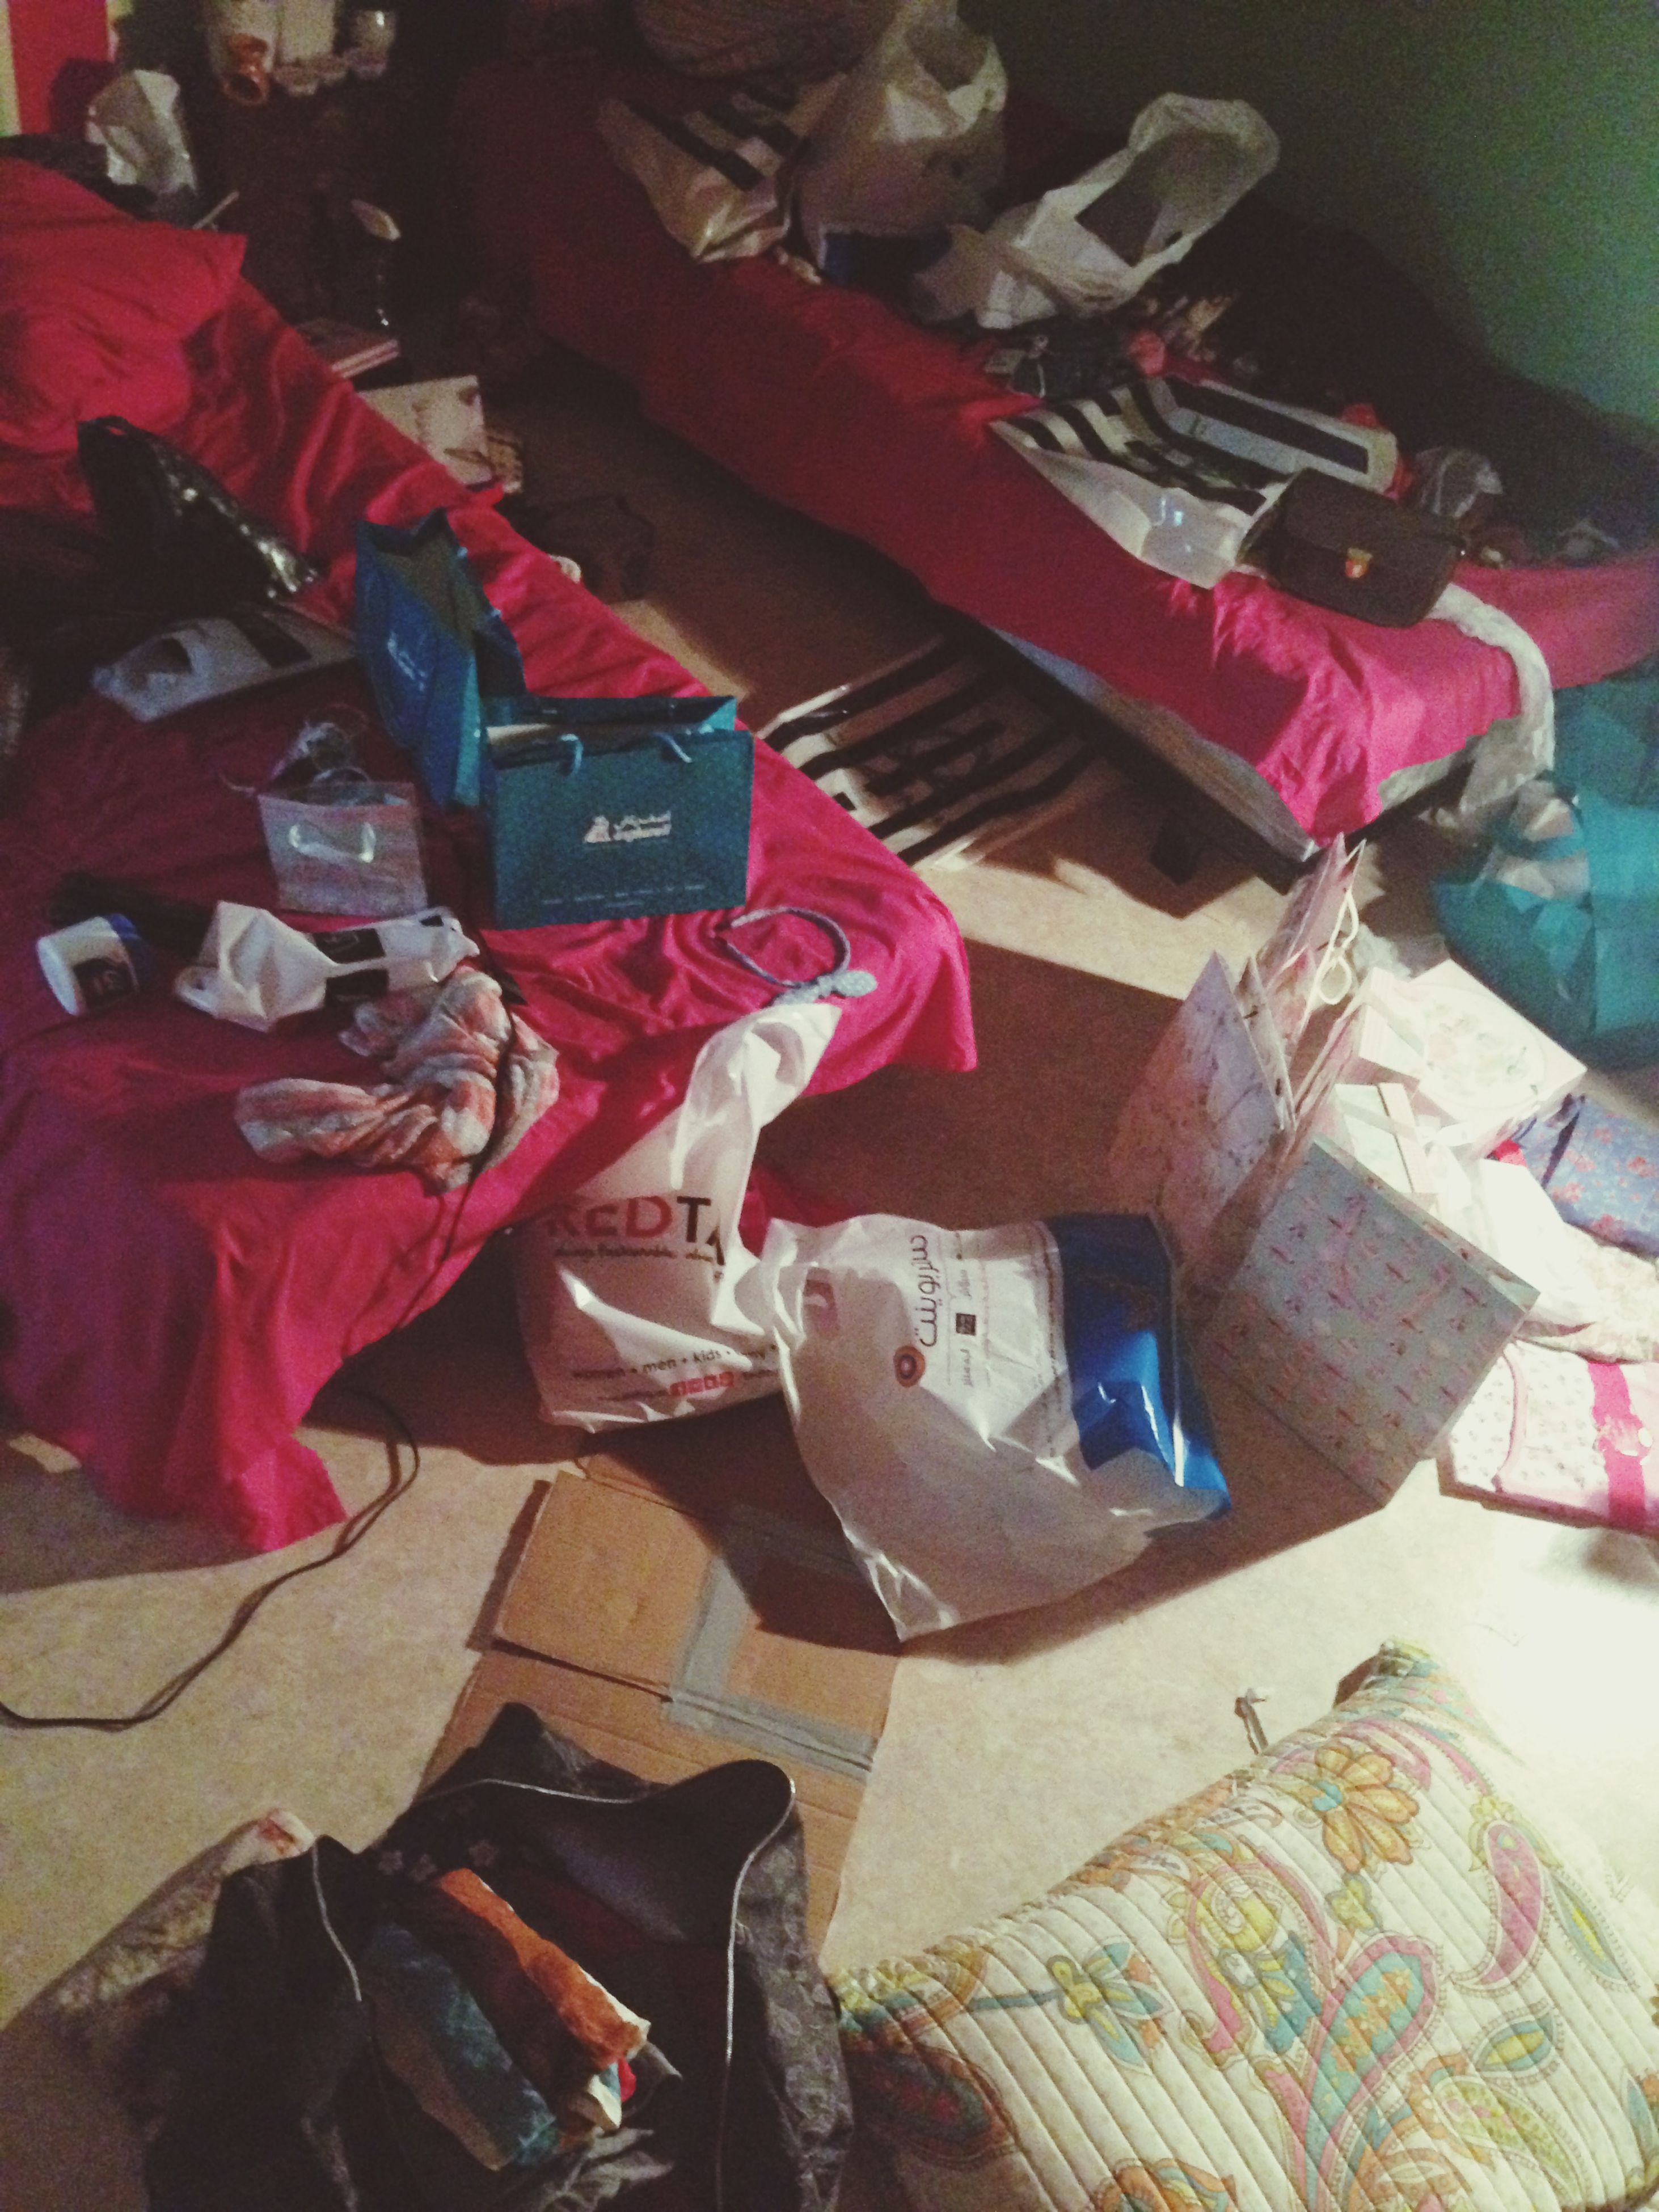 indoors, high angle view, variation, still life, large group of objects, clothing, choice, abundance, home interior, multi colored, table, paper, shoe, bed, absence, book, music, stack, textile, fashion